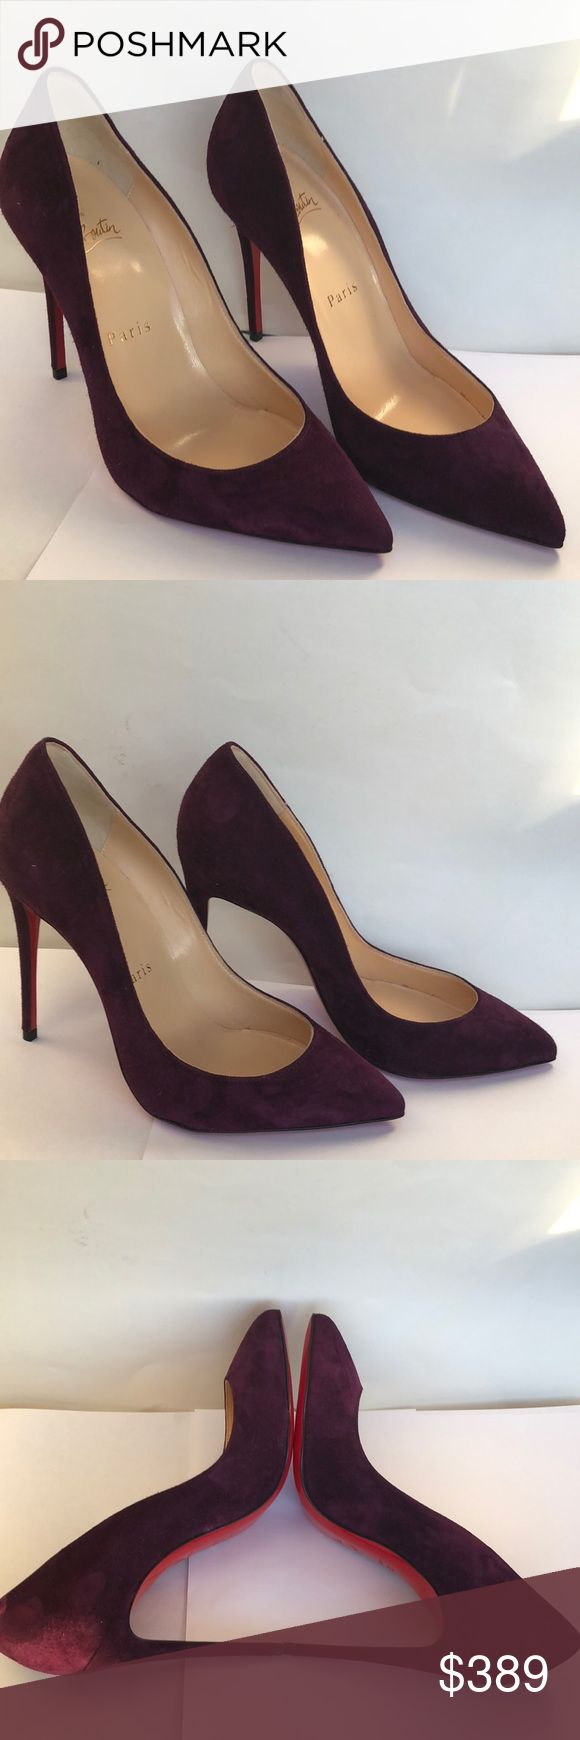 New Christian Louboutin Purple Suede So Kate 35 New without box. Authentic Christian Louboutin So Kate purple suede heels in size 35. A couple marks in suede. Christian Louboutin Shoes Heels